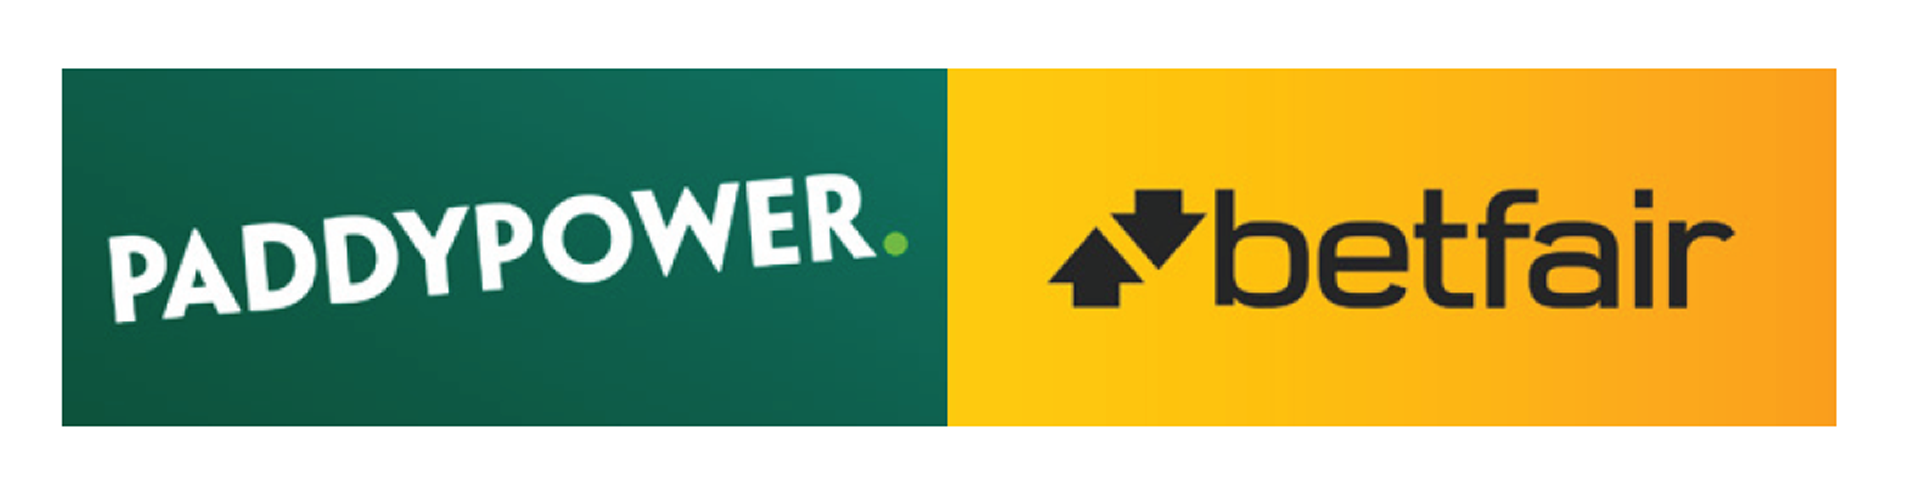 Paddy Power | Betfair